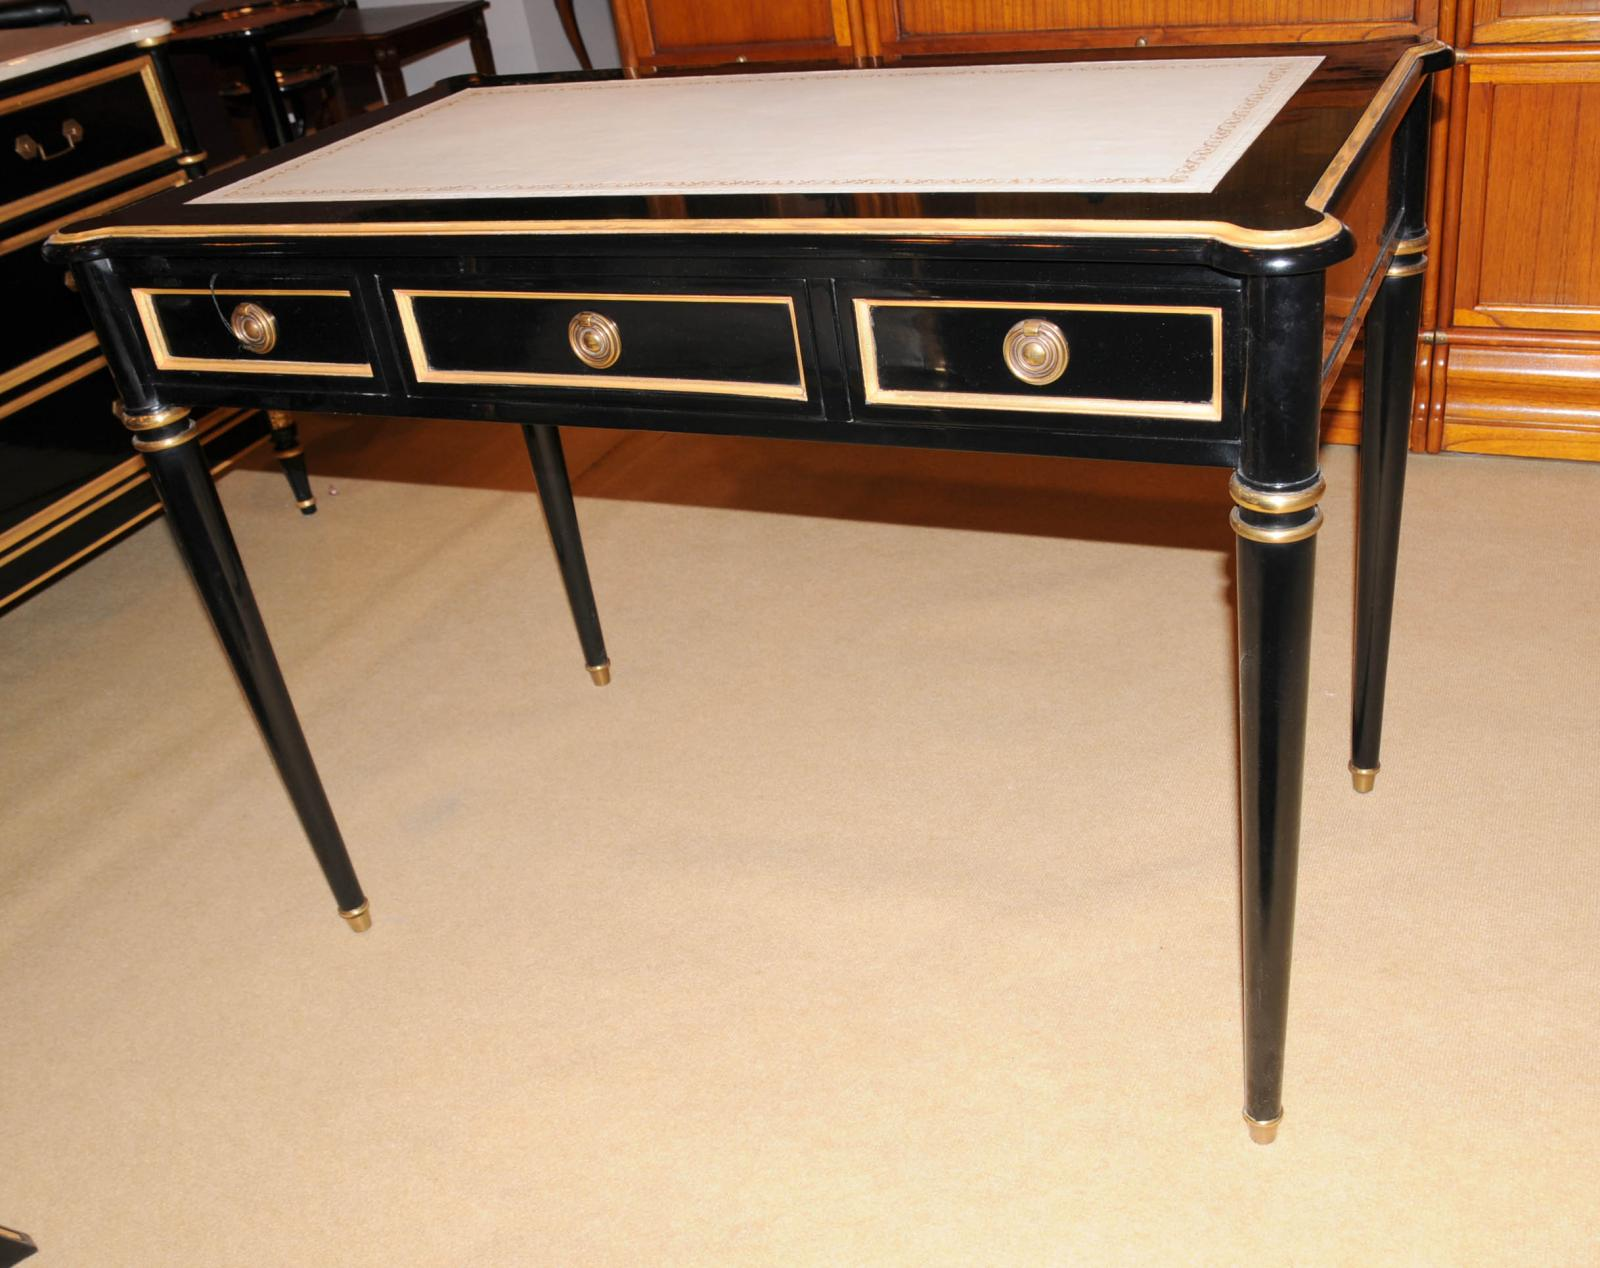 black writing desk Used (normal wear) - in excellent condition black a-frame writing desk / computer desk / office desk measures 395 length by 235 depth by 2875 height due to.